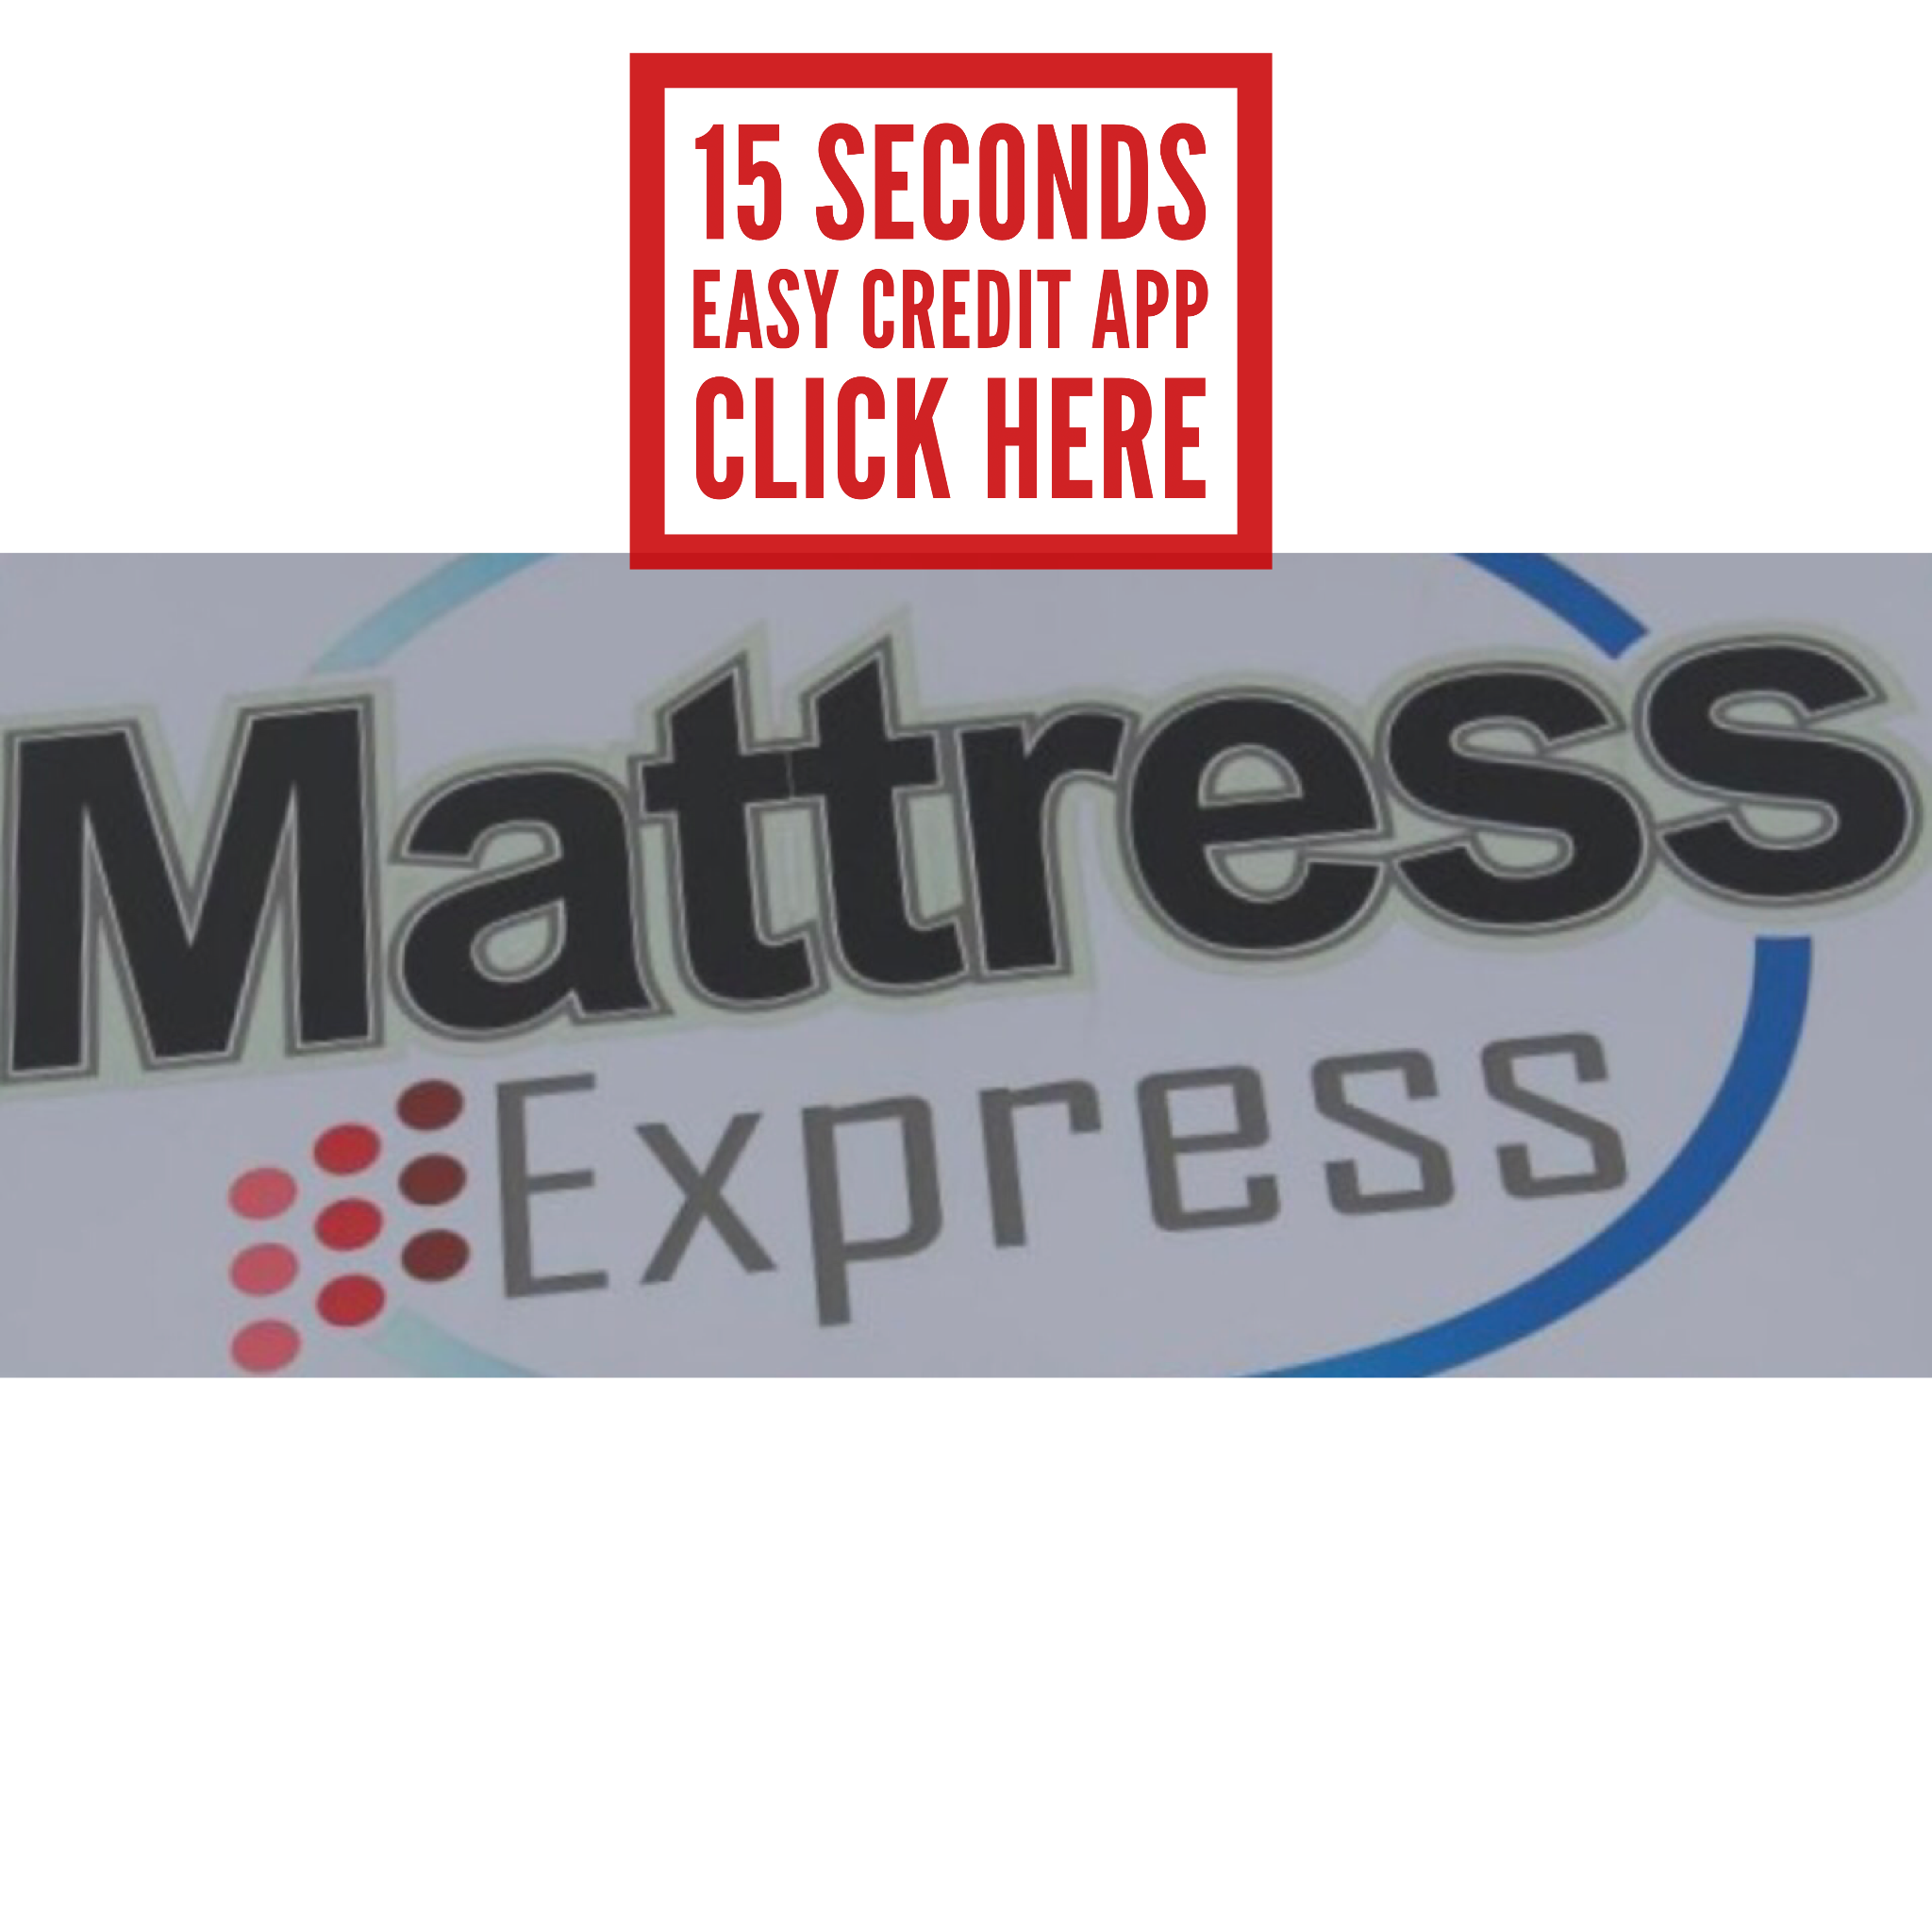 MATTRESS EXPRESS WATERTOWN NEW YORK